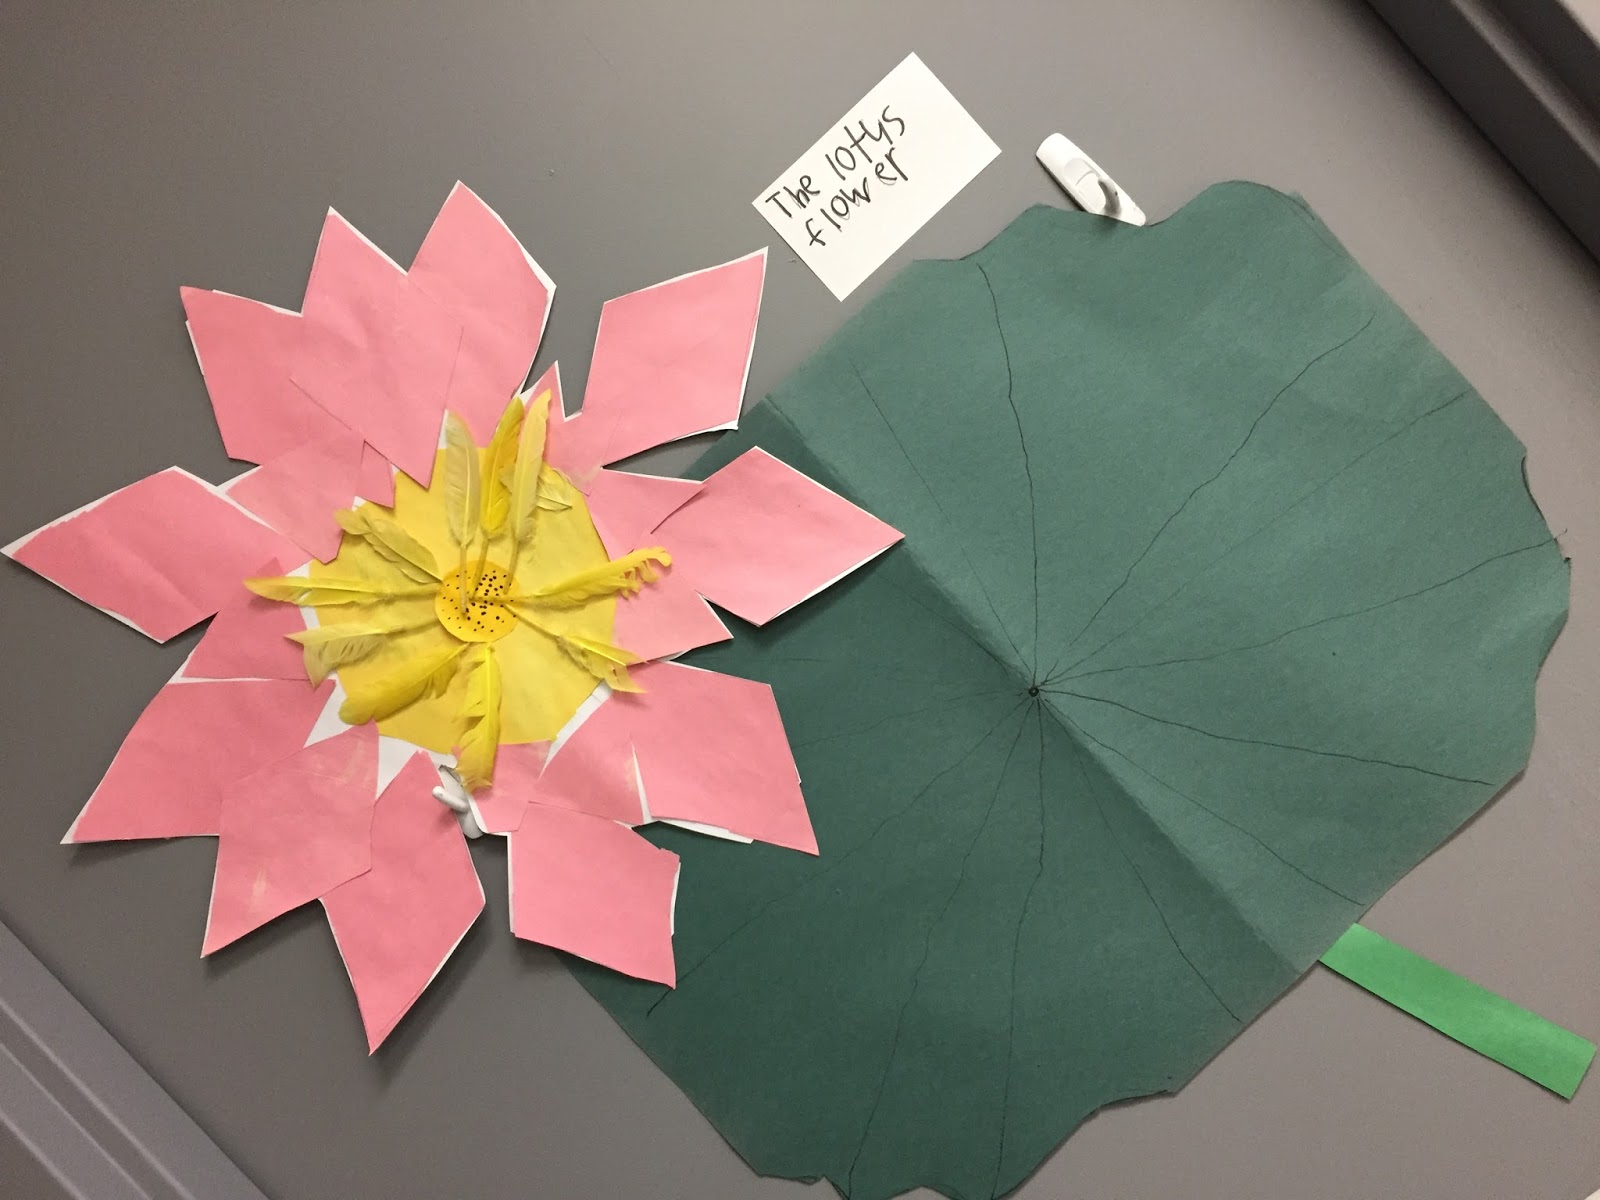 Thinking and learning in room 122 2018 these girls wanted to make a lotus flower so they worked together to cut out all the parts izmirmasajfo Image collections